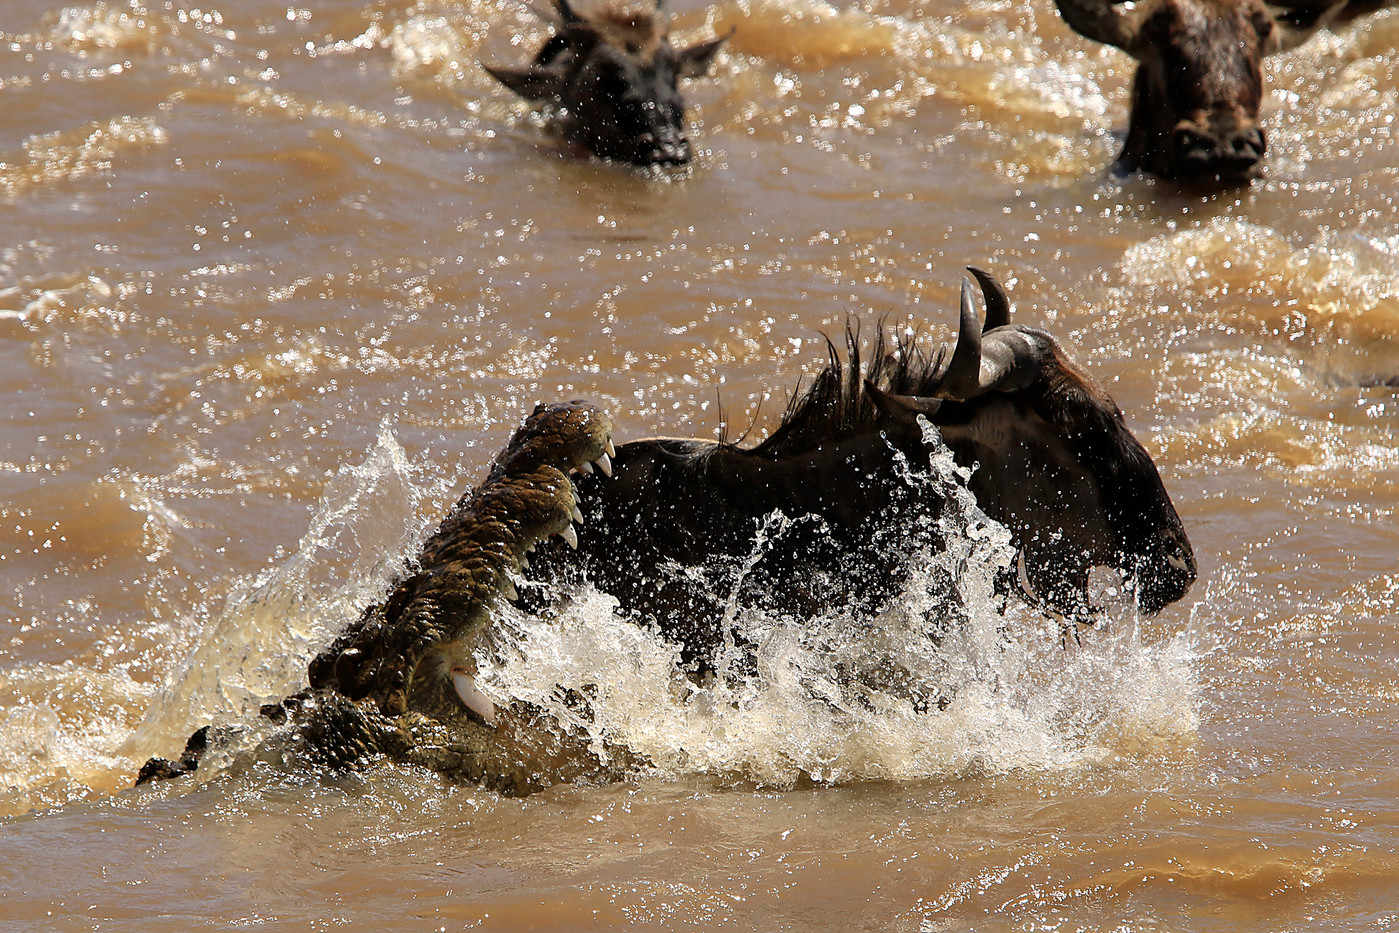 Nile Crocodile attacking a wildebeest in the Mara River, Tanzania